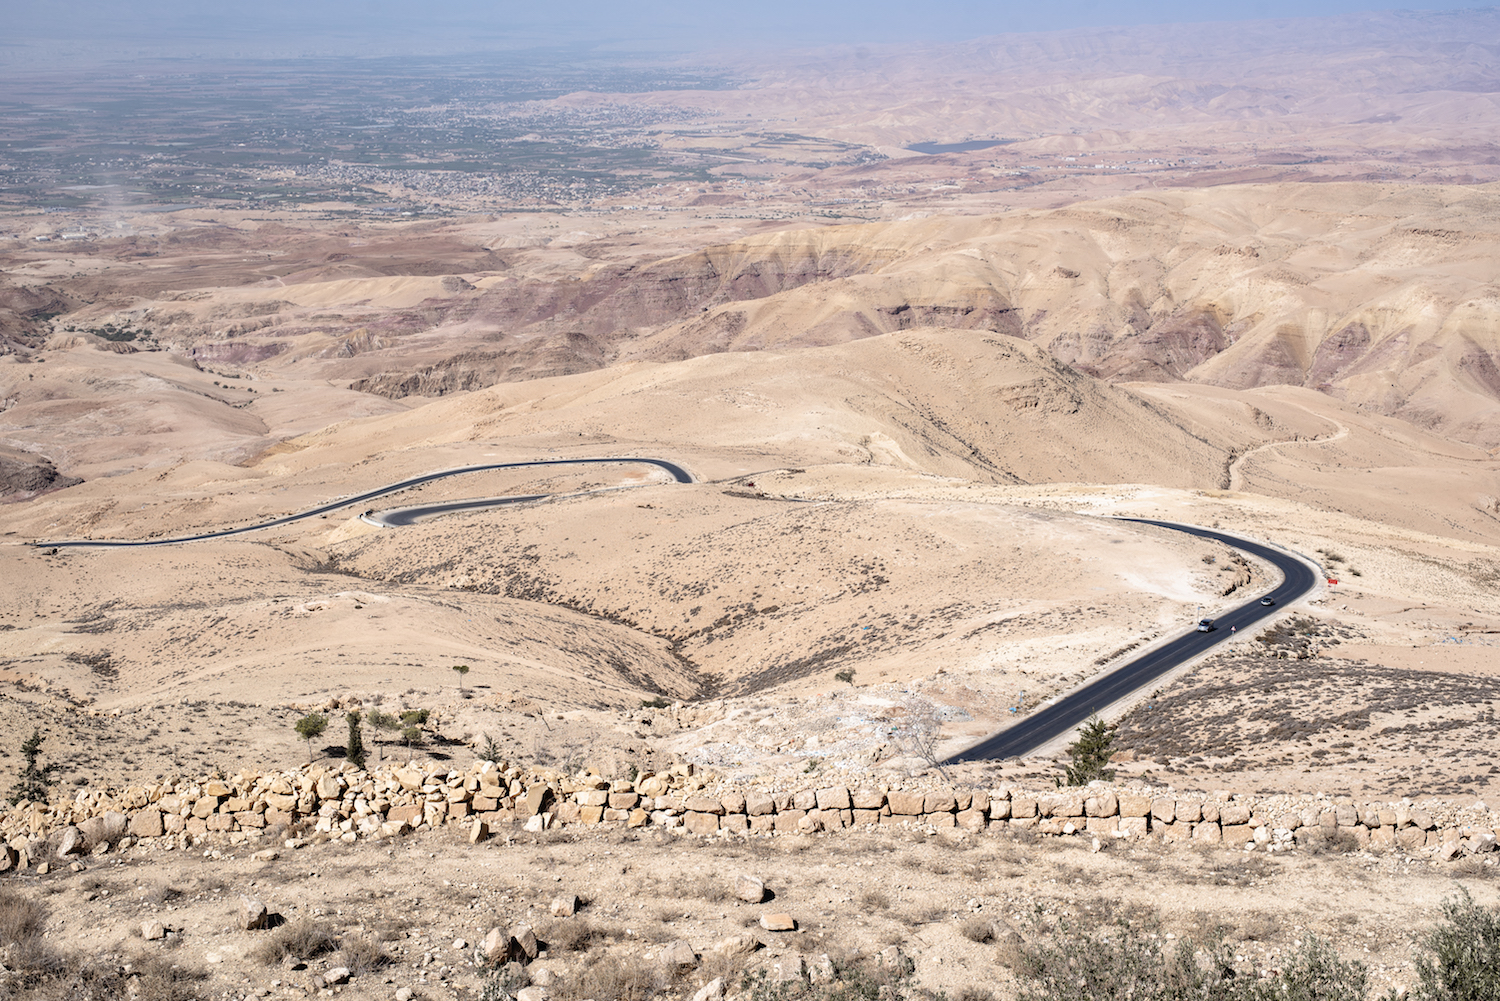 The Holy Land and the King's Highway, Mount Nebo, Jordan. By Ben Holbrook.